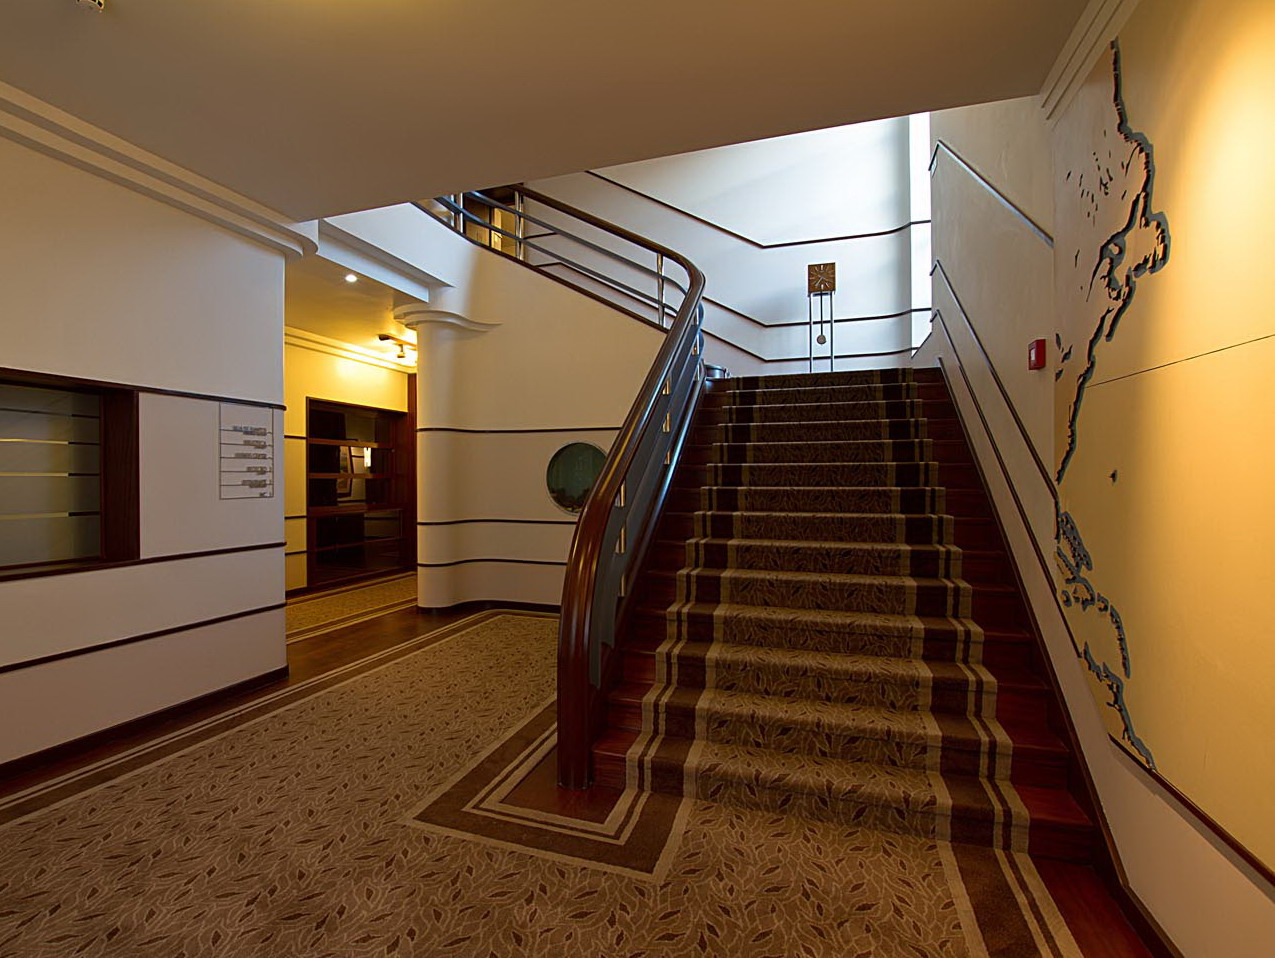 TN_Staircase_Art_Deco.jpg